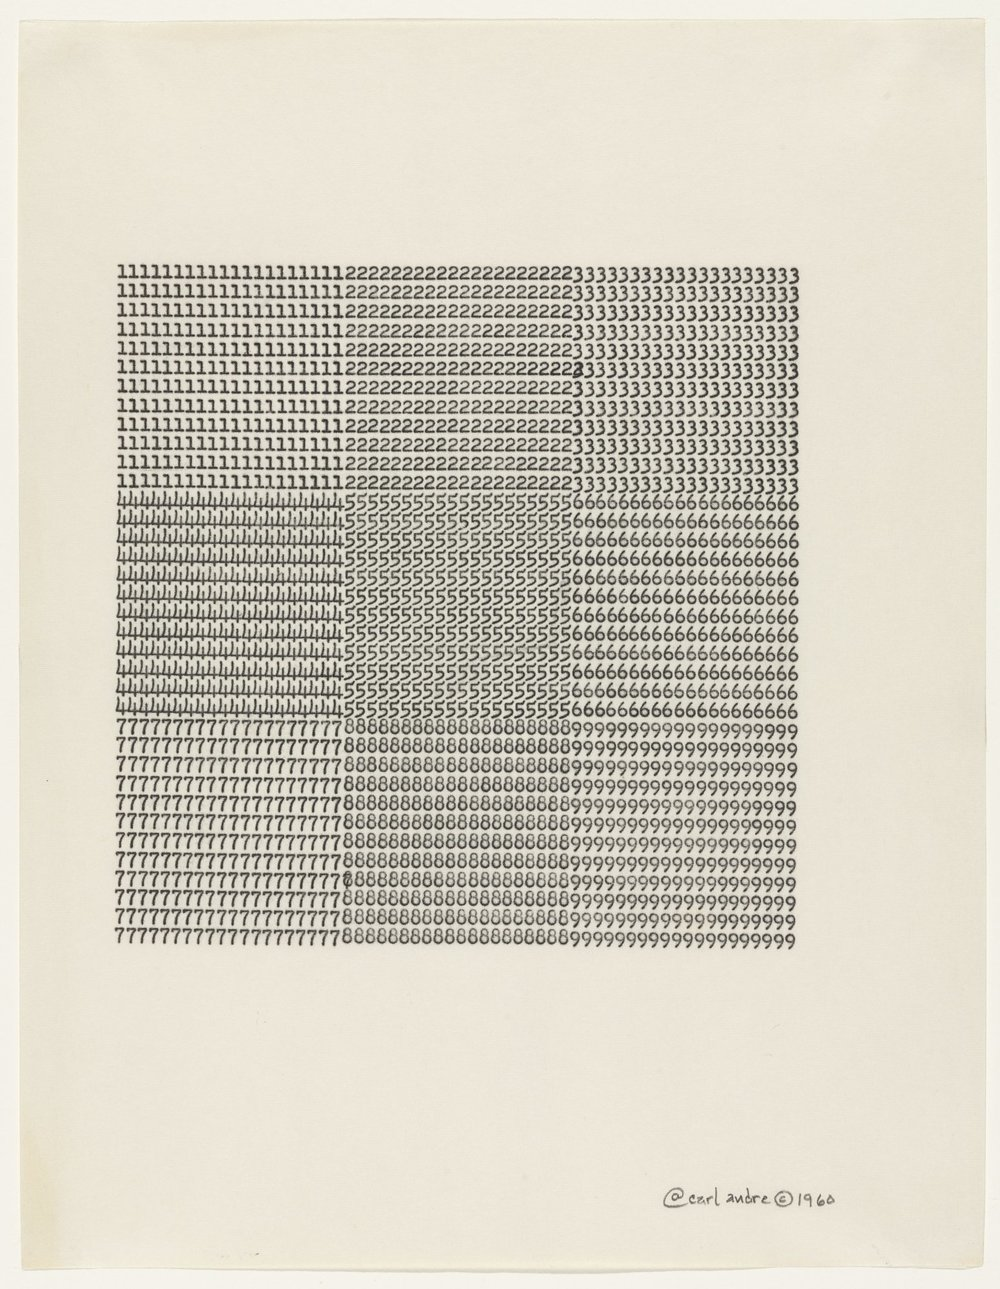 Carl Andre, Untitled, 1960, typewriting on paper, 11 x 8 ½ inches